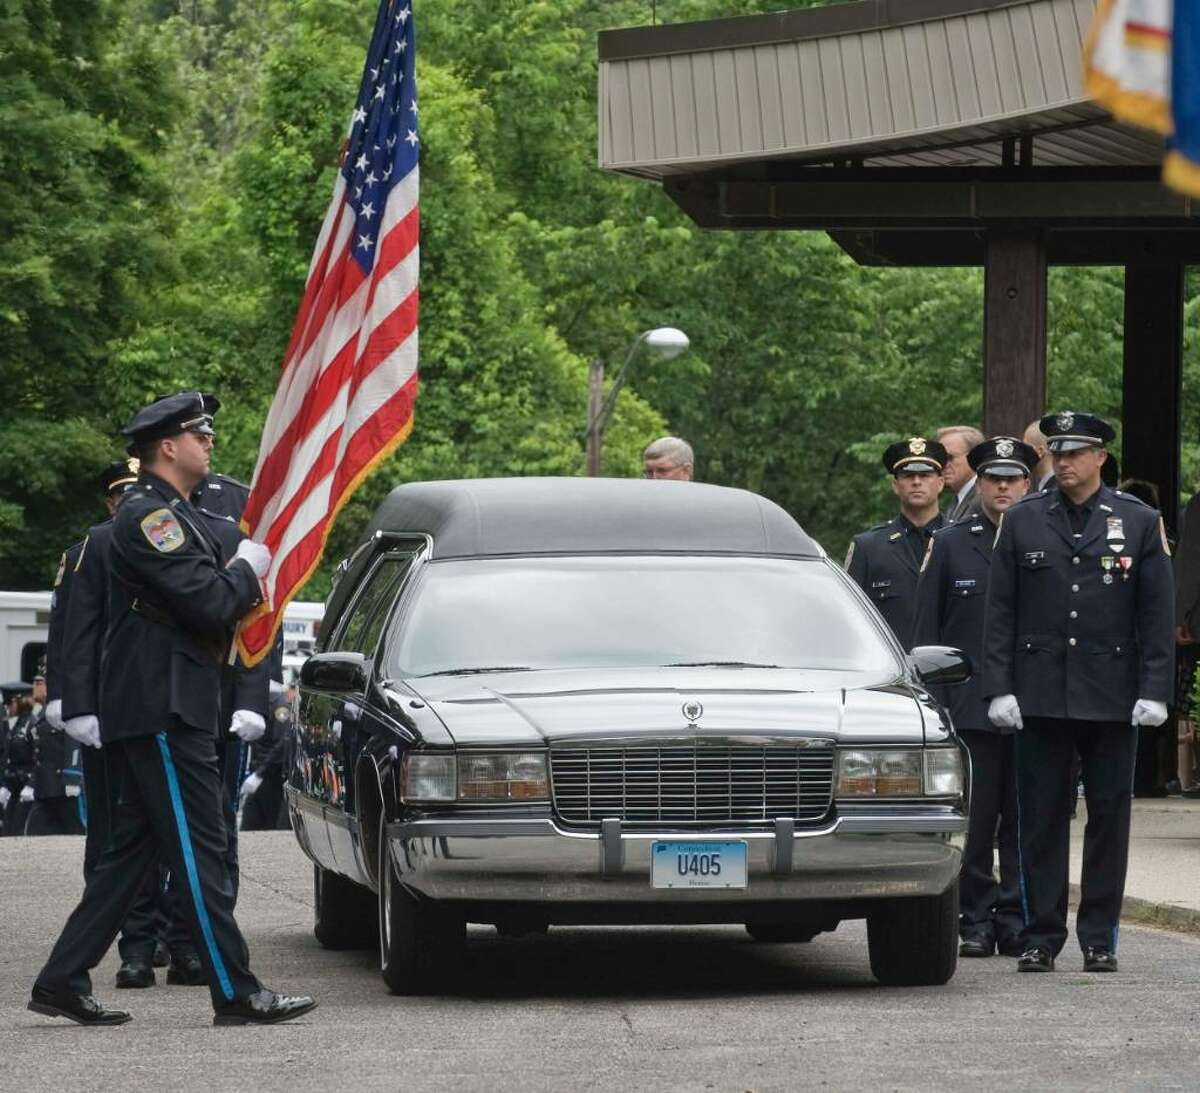 Danbury police stand alongside the hearse of Danbury Police Officer Donald Hassiak at St. Francis Xavier Roman Catholic Church in New Milford. Wednesday, June 9, 2010